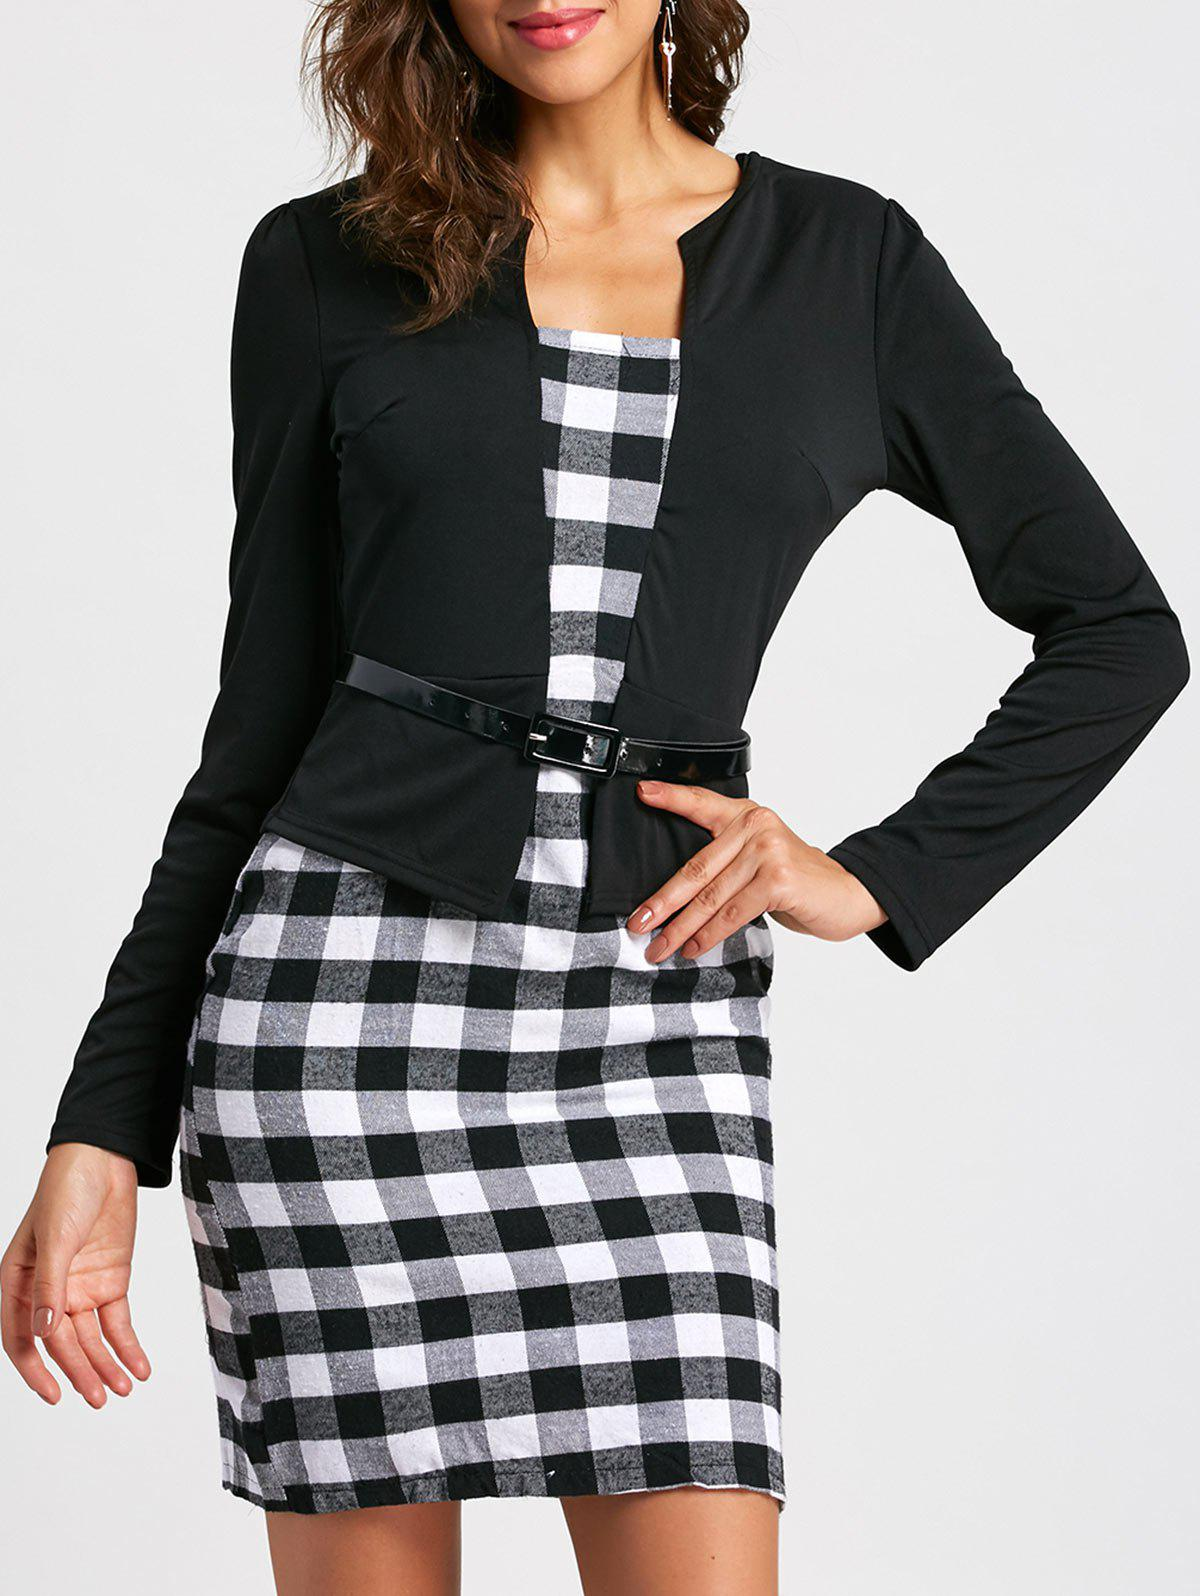 Best Stylish Round Collar Checked Print Faux Twinset With Belt Long Sleeve Women's Dress